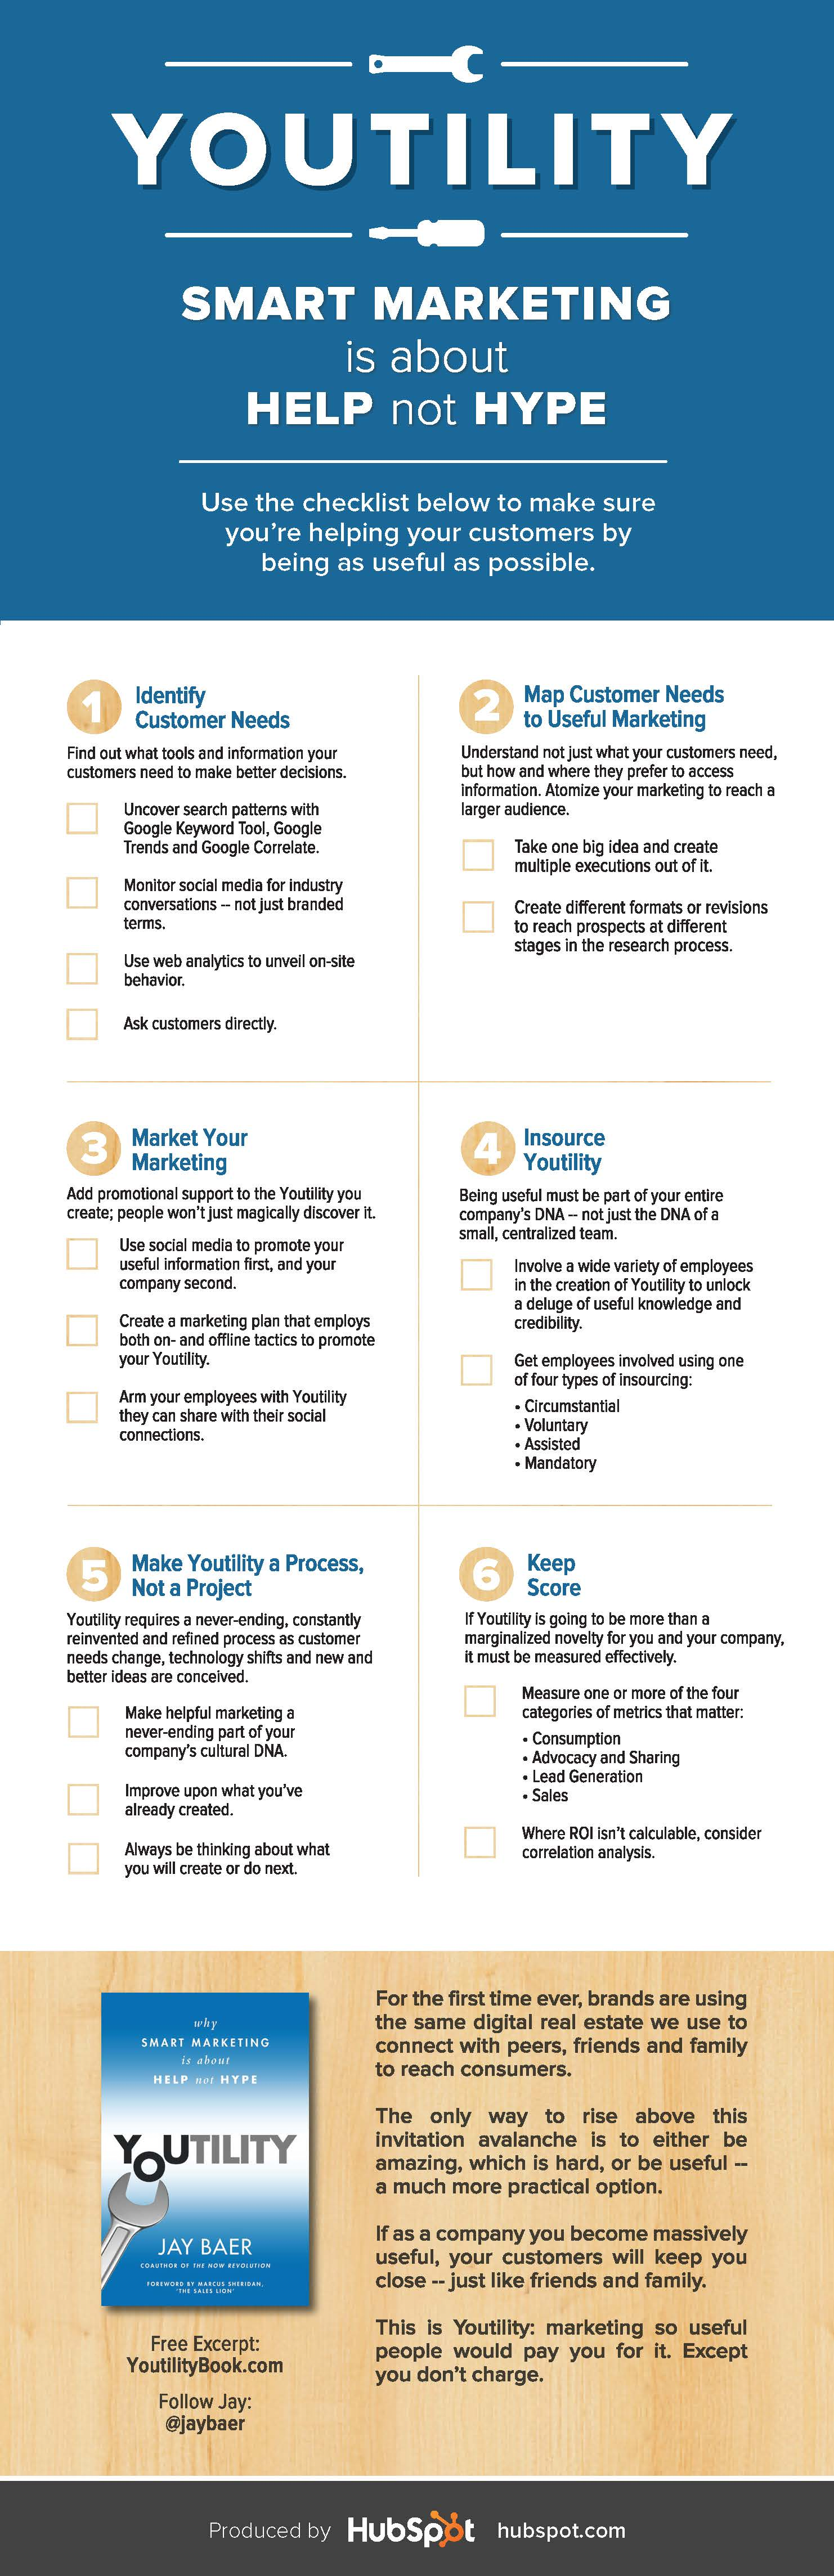 6 Steps to Creating Youtility Checklist by Jay Baer HubSpot The 6 Step Path to Creating Inherently Useful Marketing